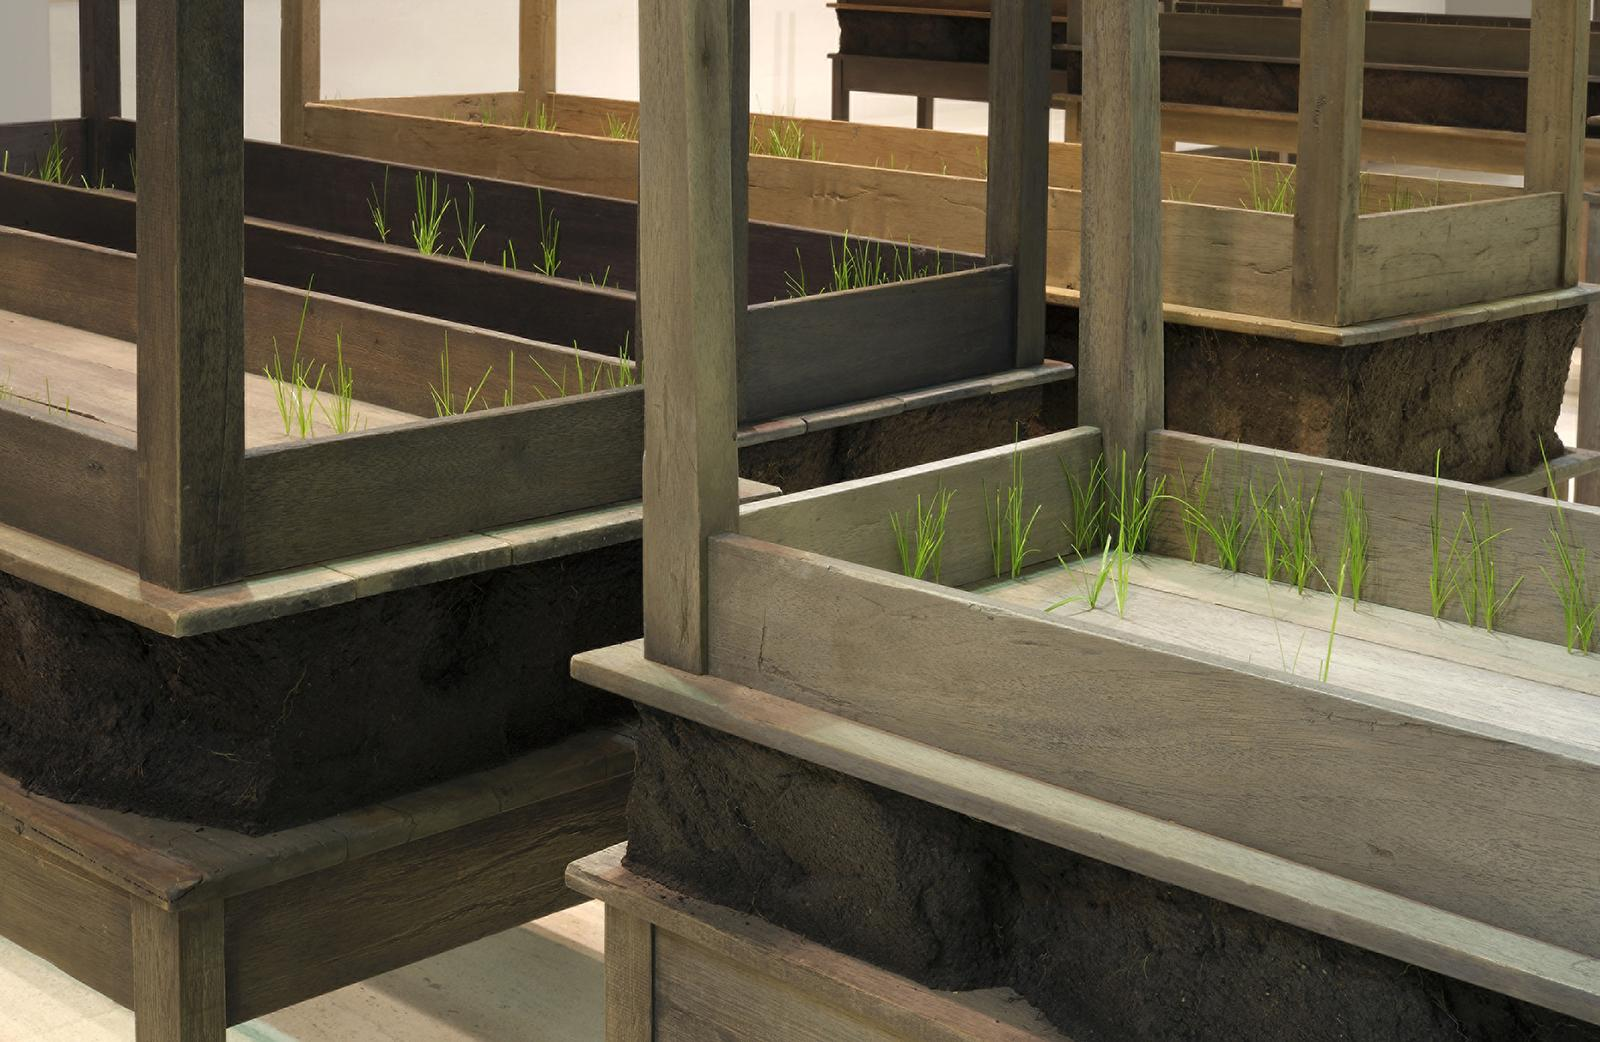 A close-up image shows several rectangular wooden tables and secondary, identical tables stacked upside-down on top with thin blades of green grass poking out of them.